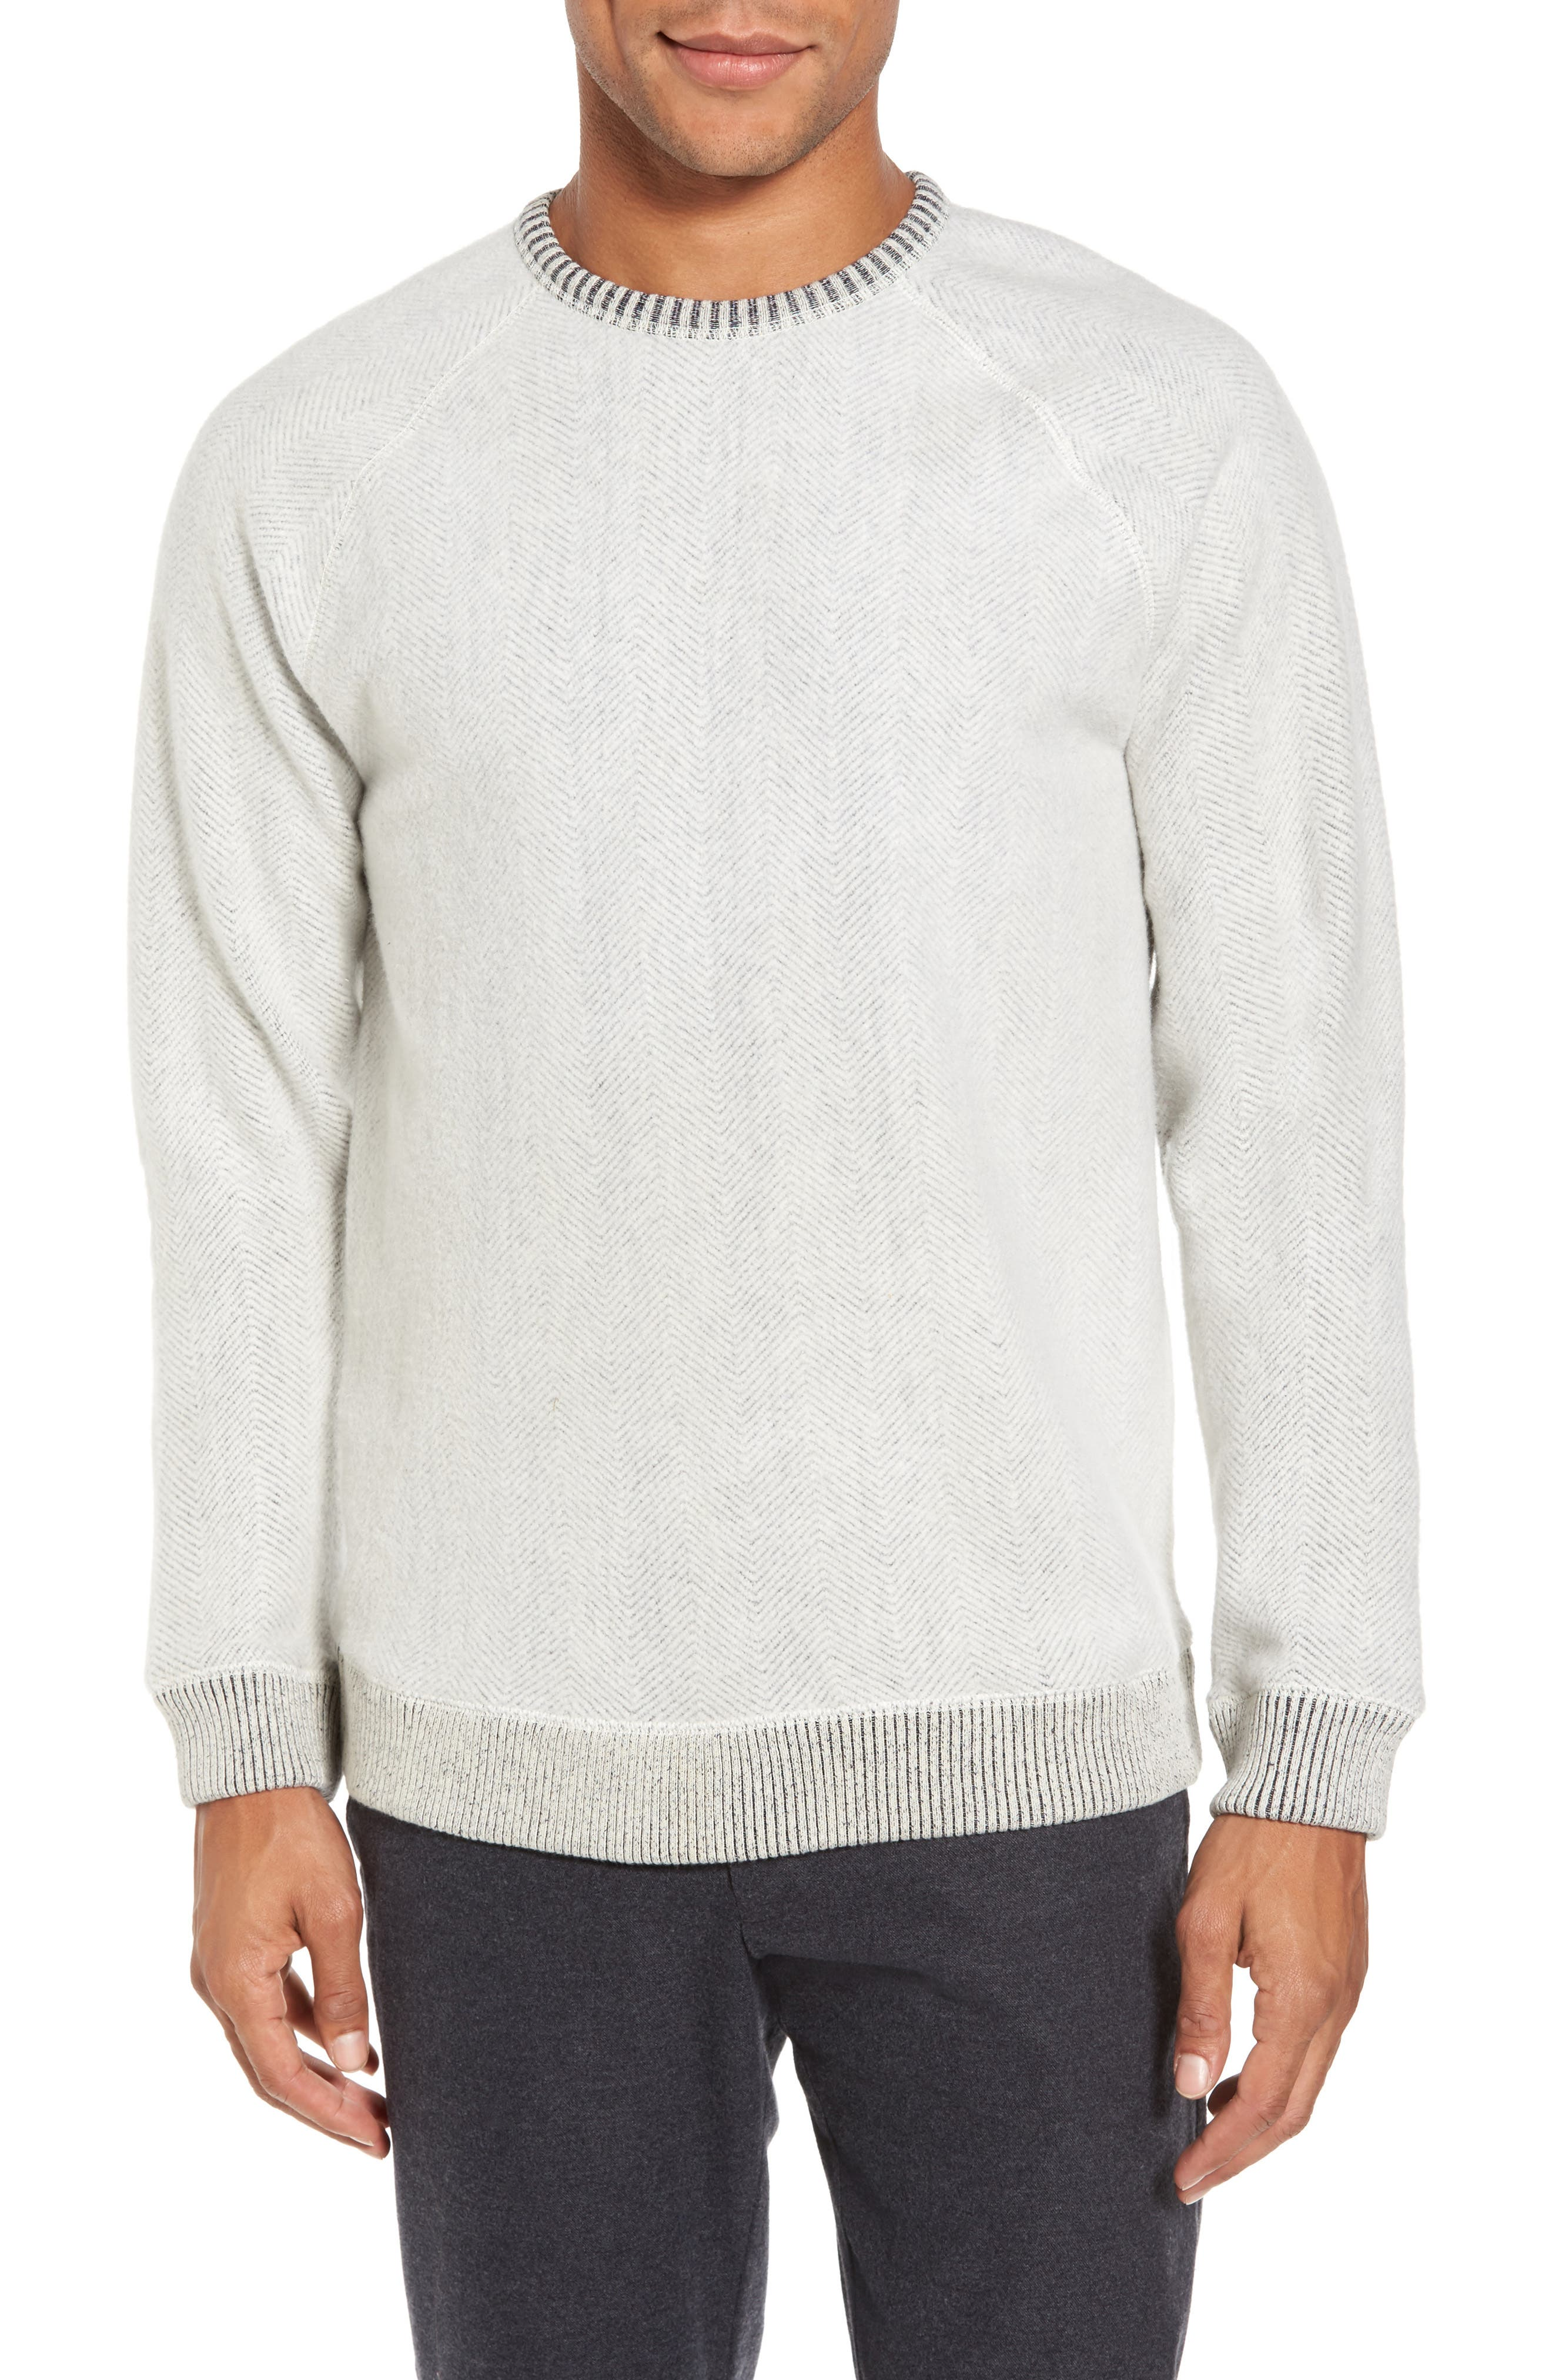 Alternate Image 1 Selected - Nordstrom Men's Shop Brushed Fleece Sweatshirt